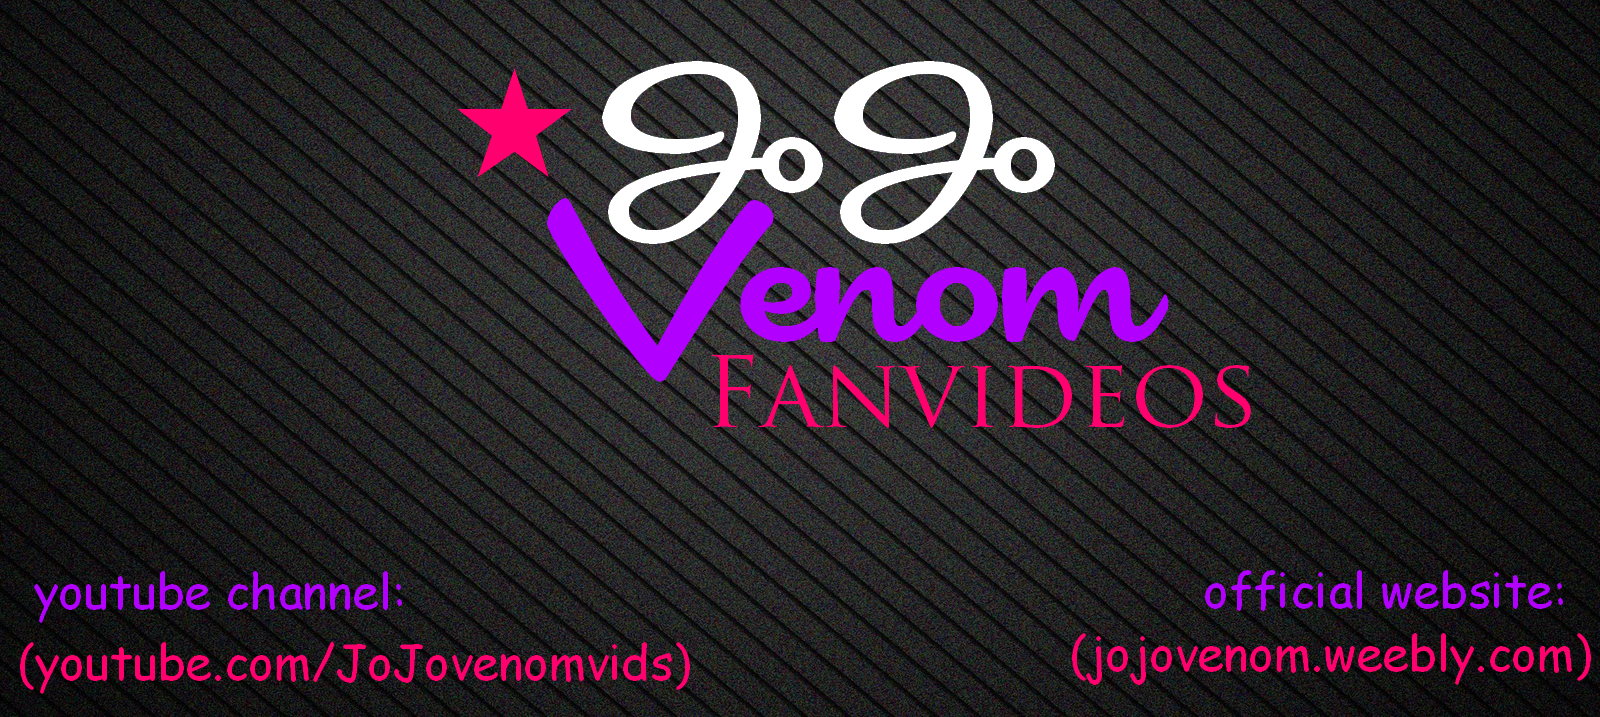 i've used this before (this is my cover) but i dont remerber the JoJo Venom font